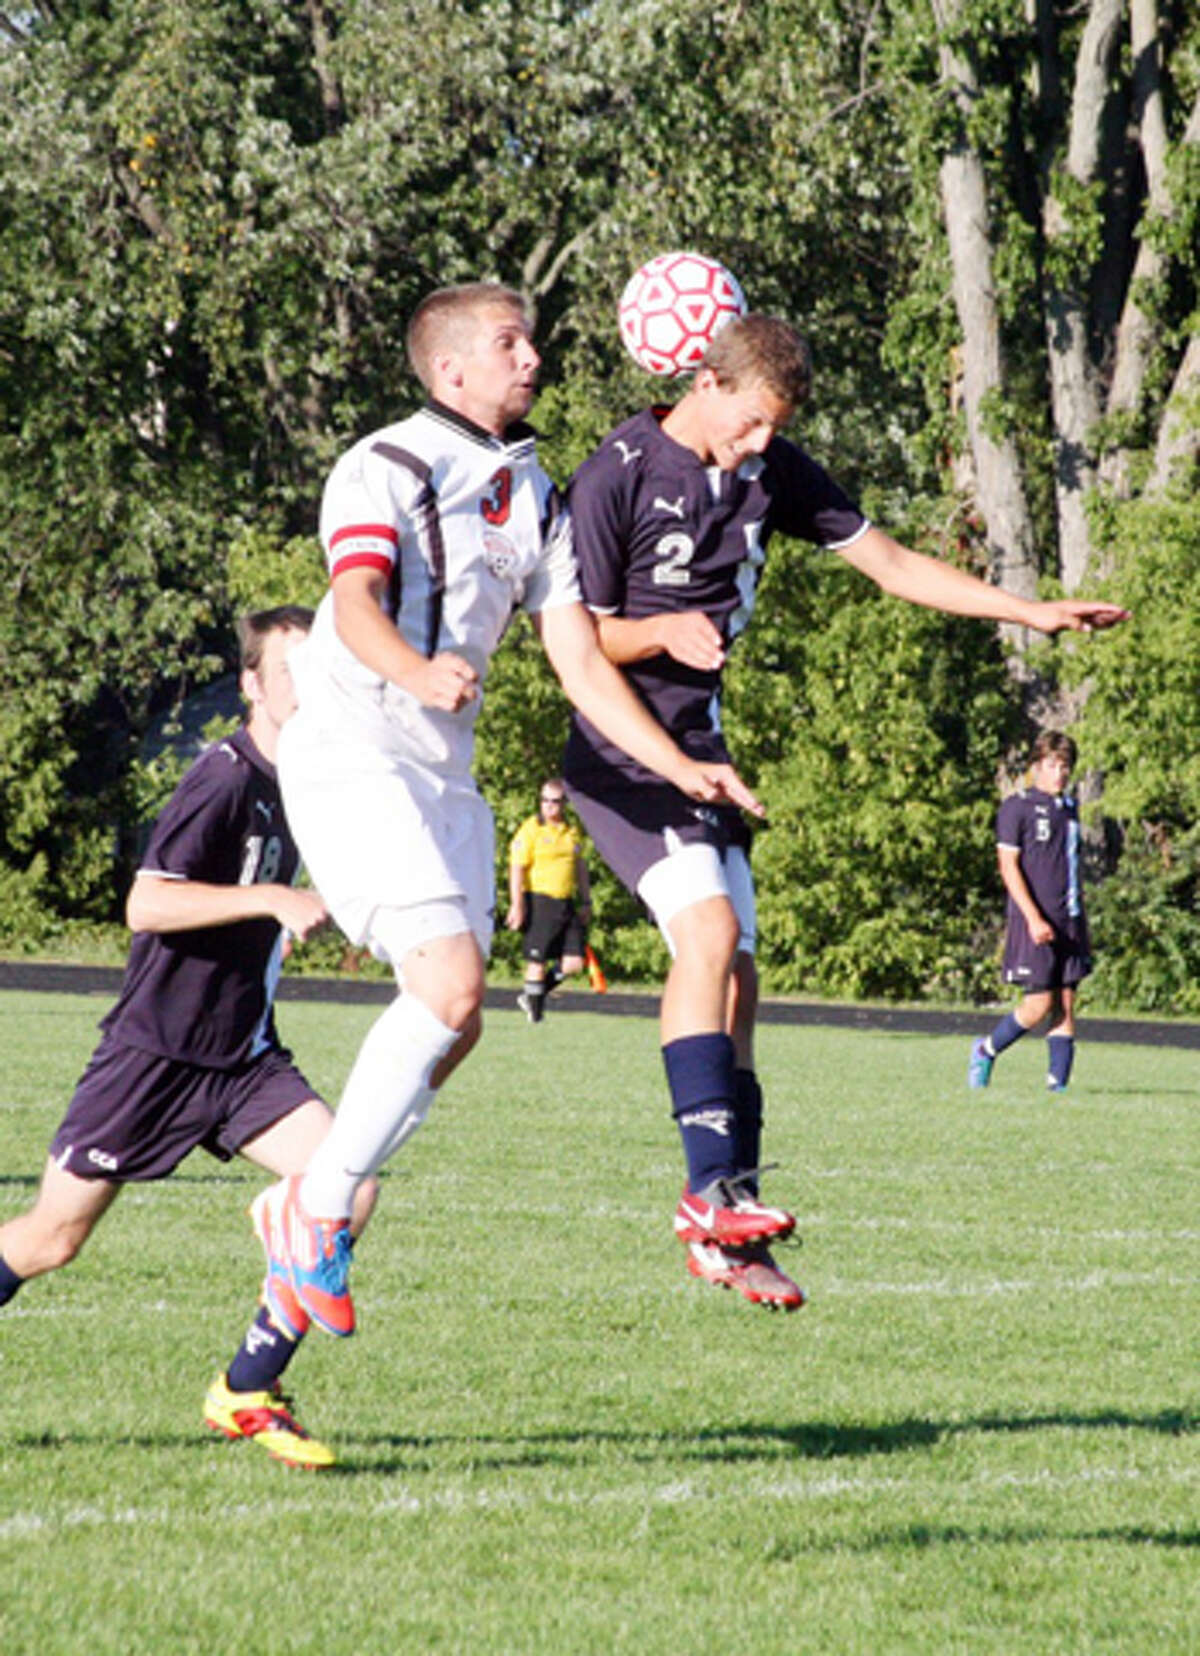 HEADS UP: Reed City's Ricky Droke goes up for a header against CCA's Justin Thorne. (Herald Review photo/John Raffel)